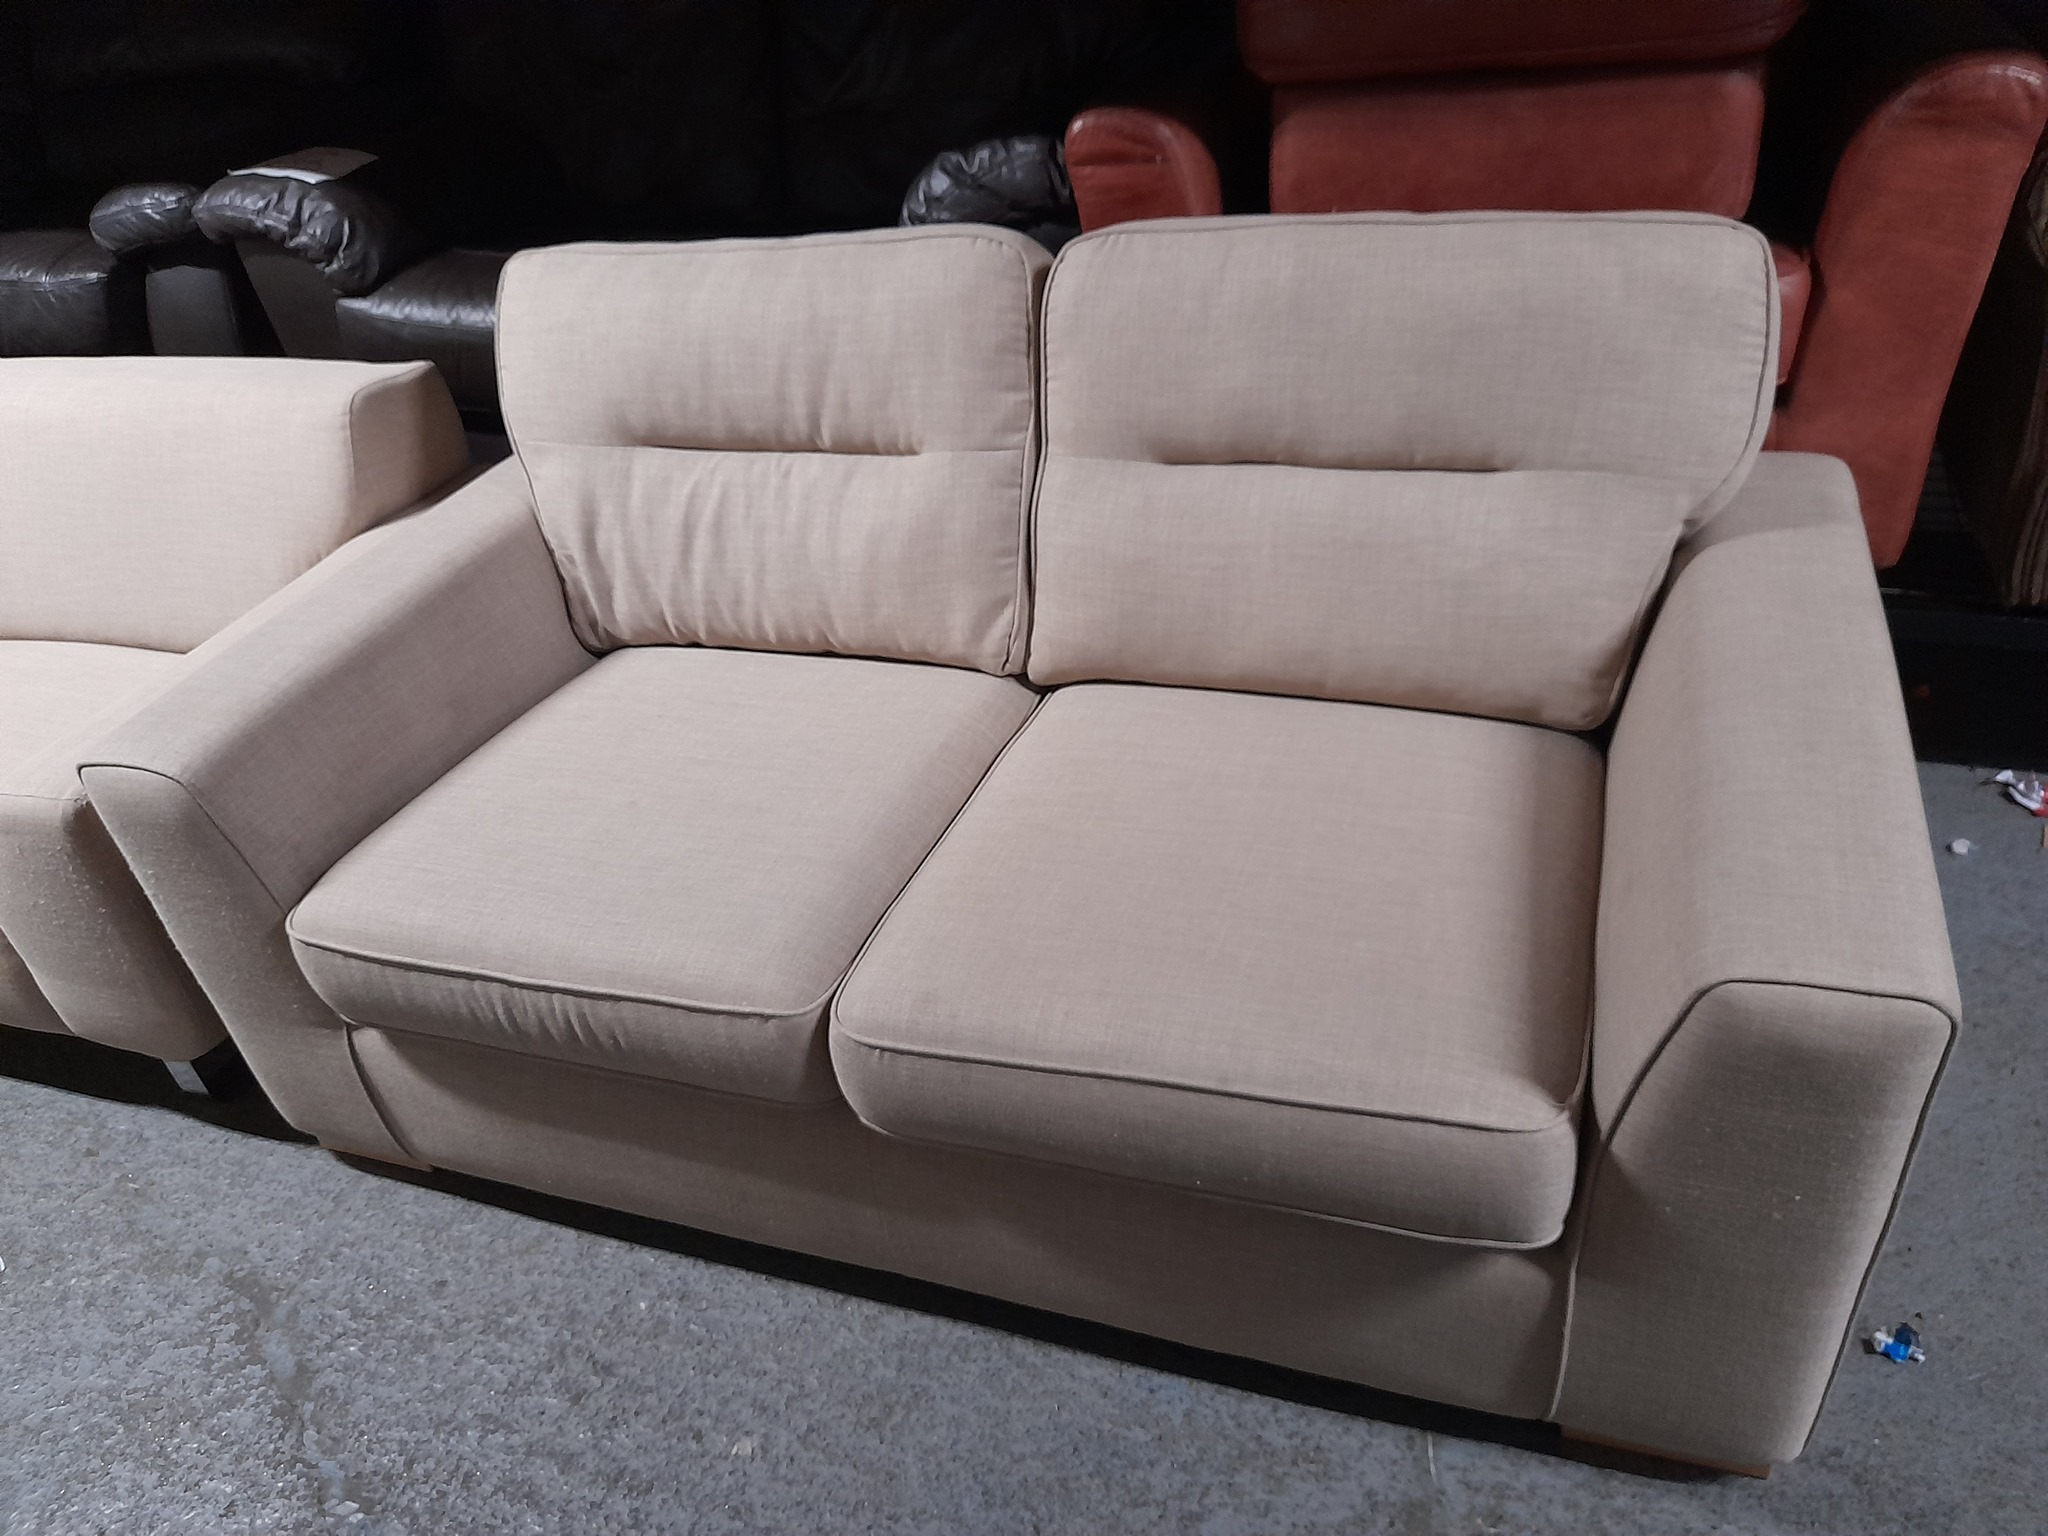 BEIGE FABRIC SOFA £95